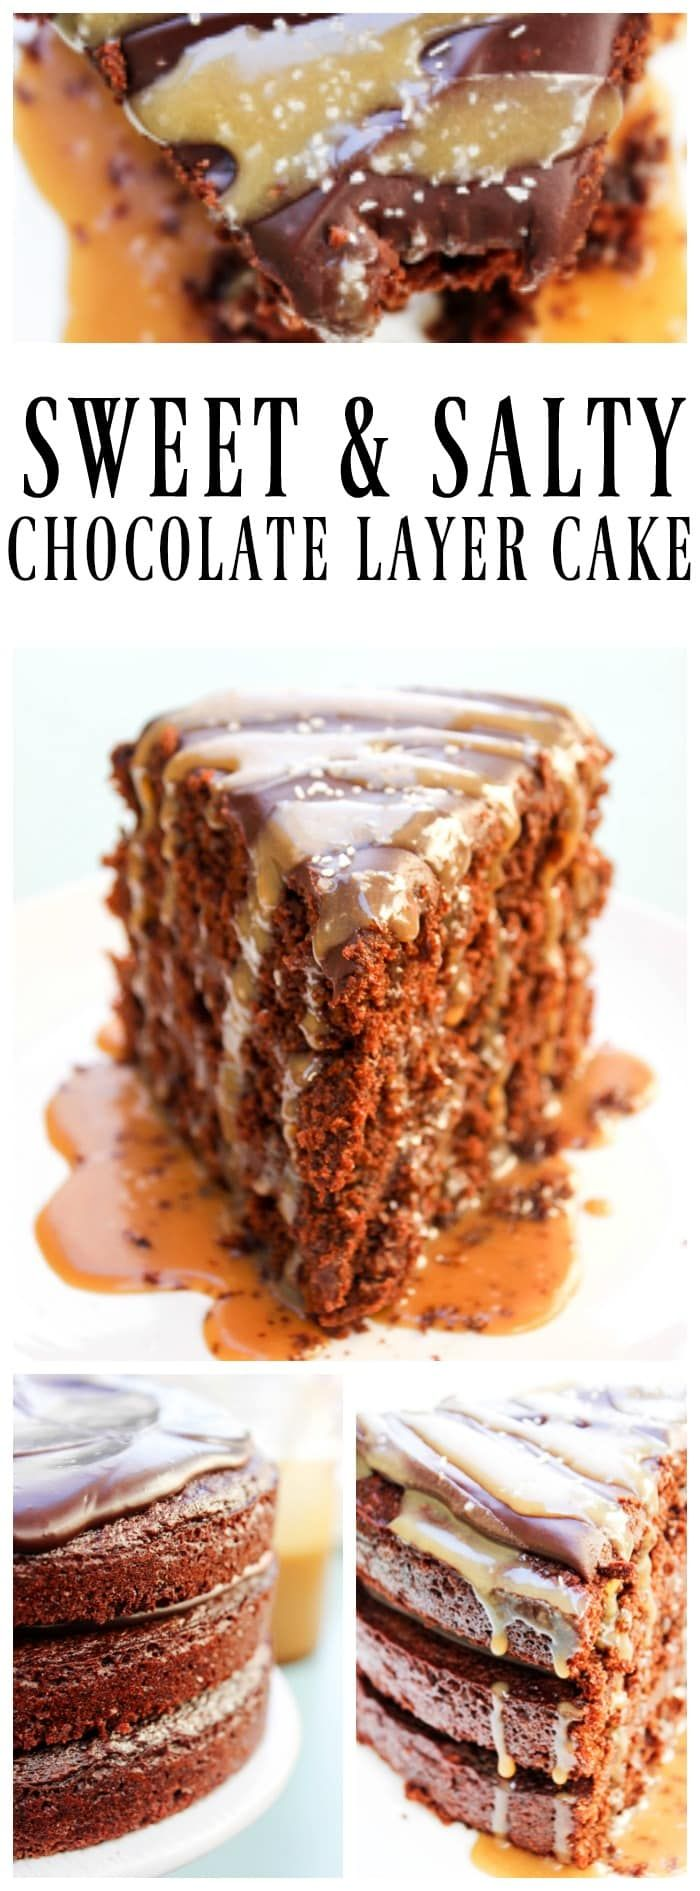 Sweet & Salty Chocolate Layer Cake layers of rich buttermilk chocolate cake and ganache, drizzled with a salted caramel sauce & topped with coarse sea salt.